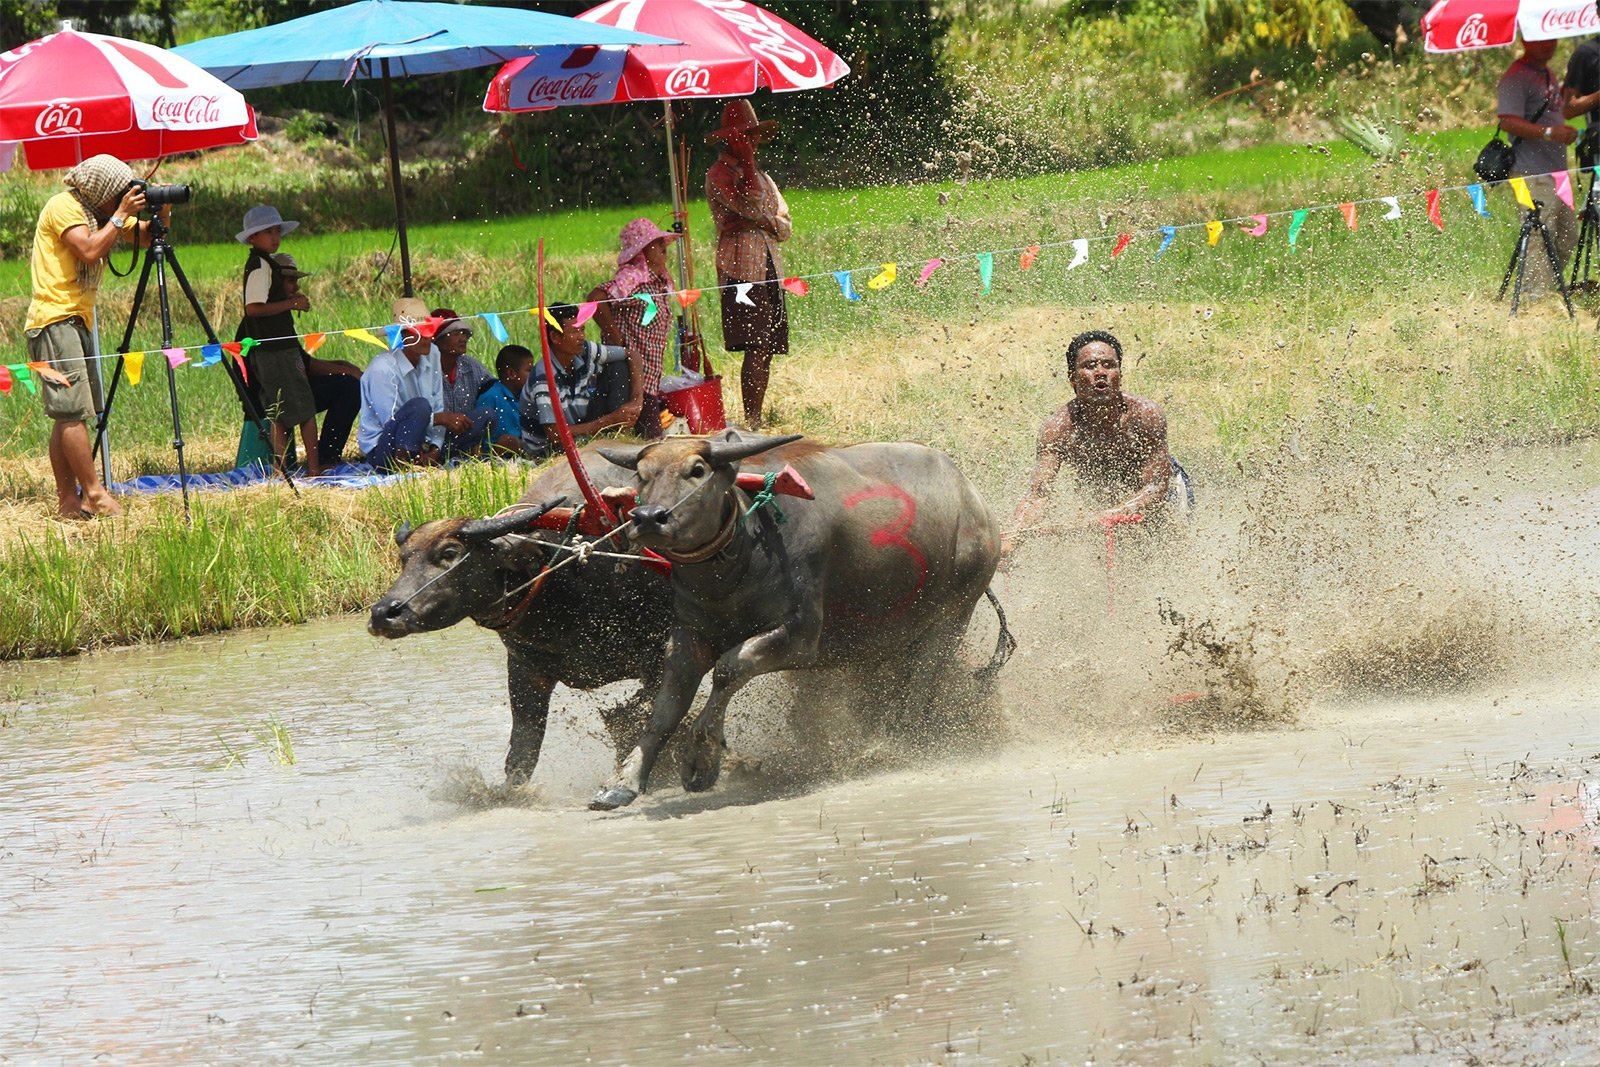 How to visit the Buffalo Race in Pattaya